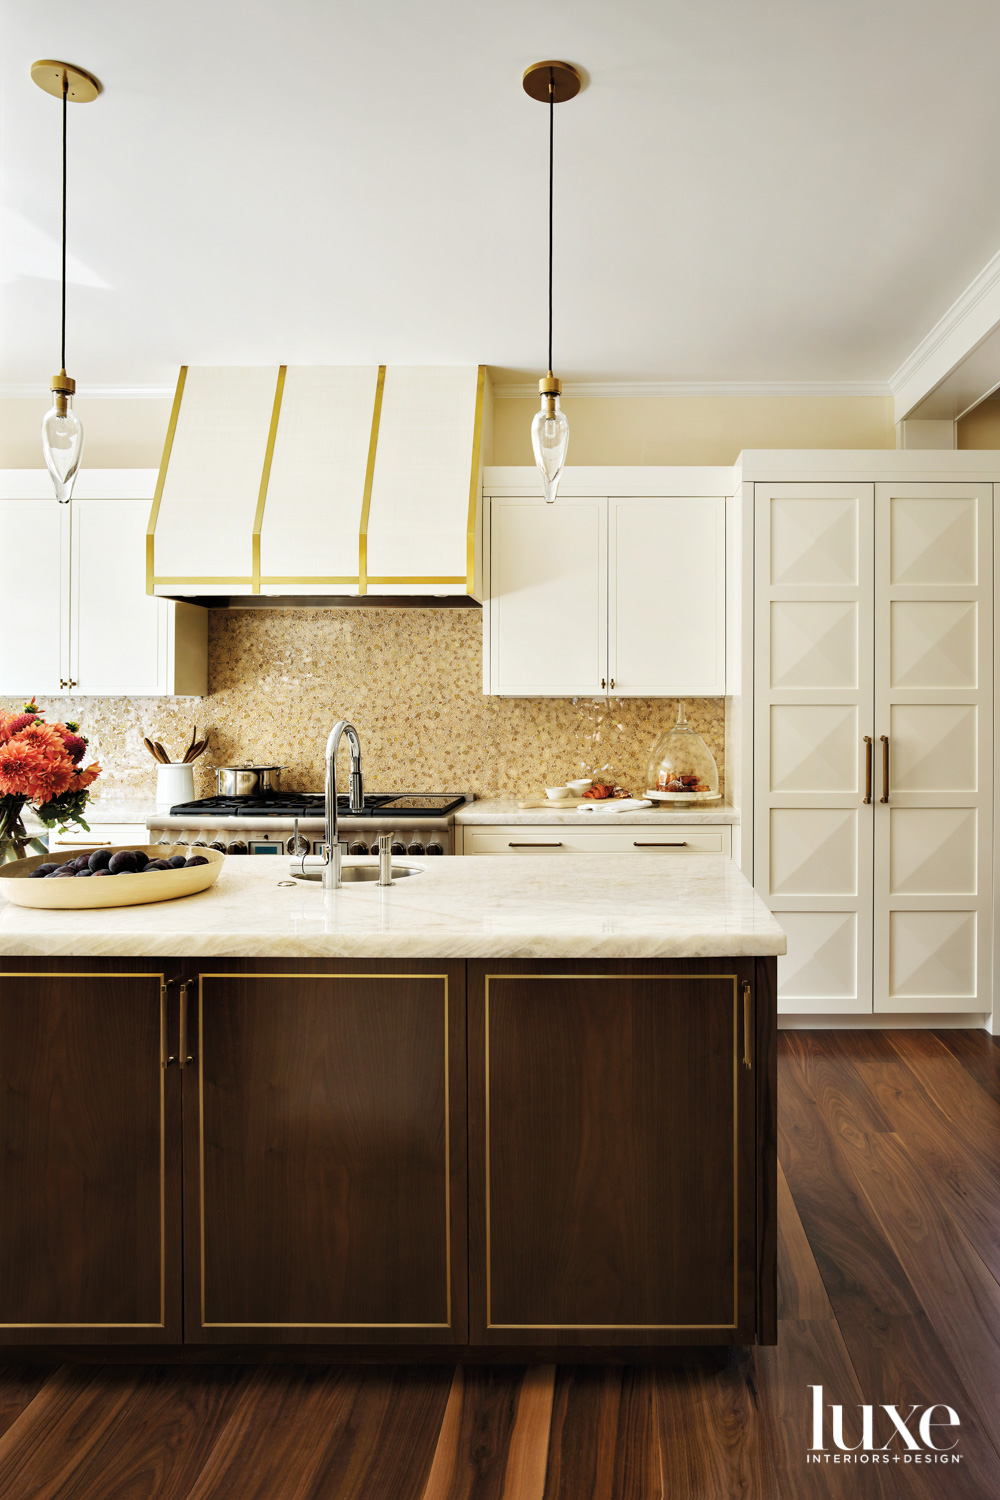 The kitchen has brass accents.